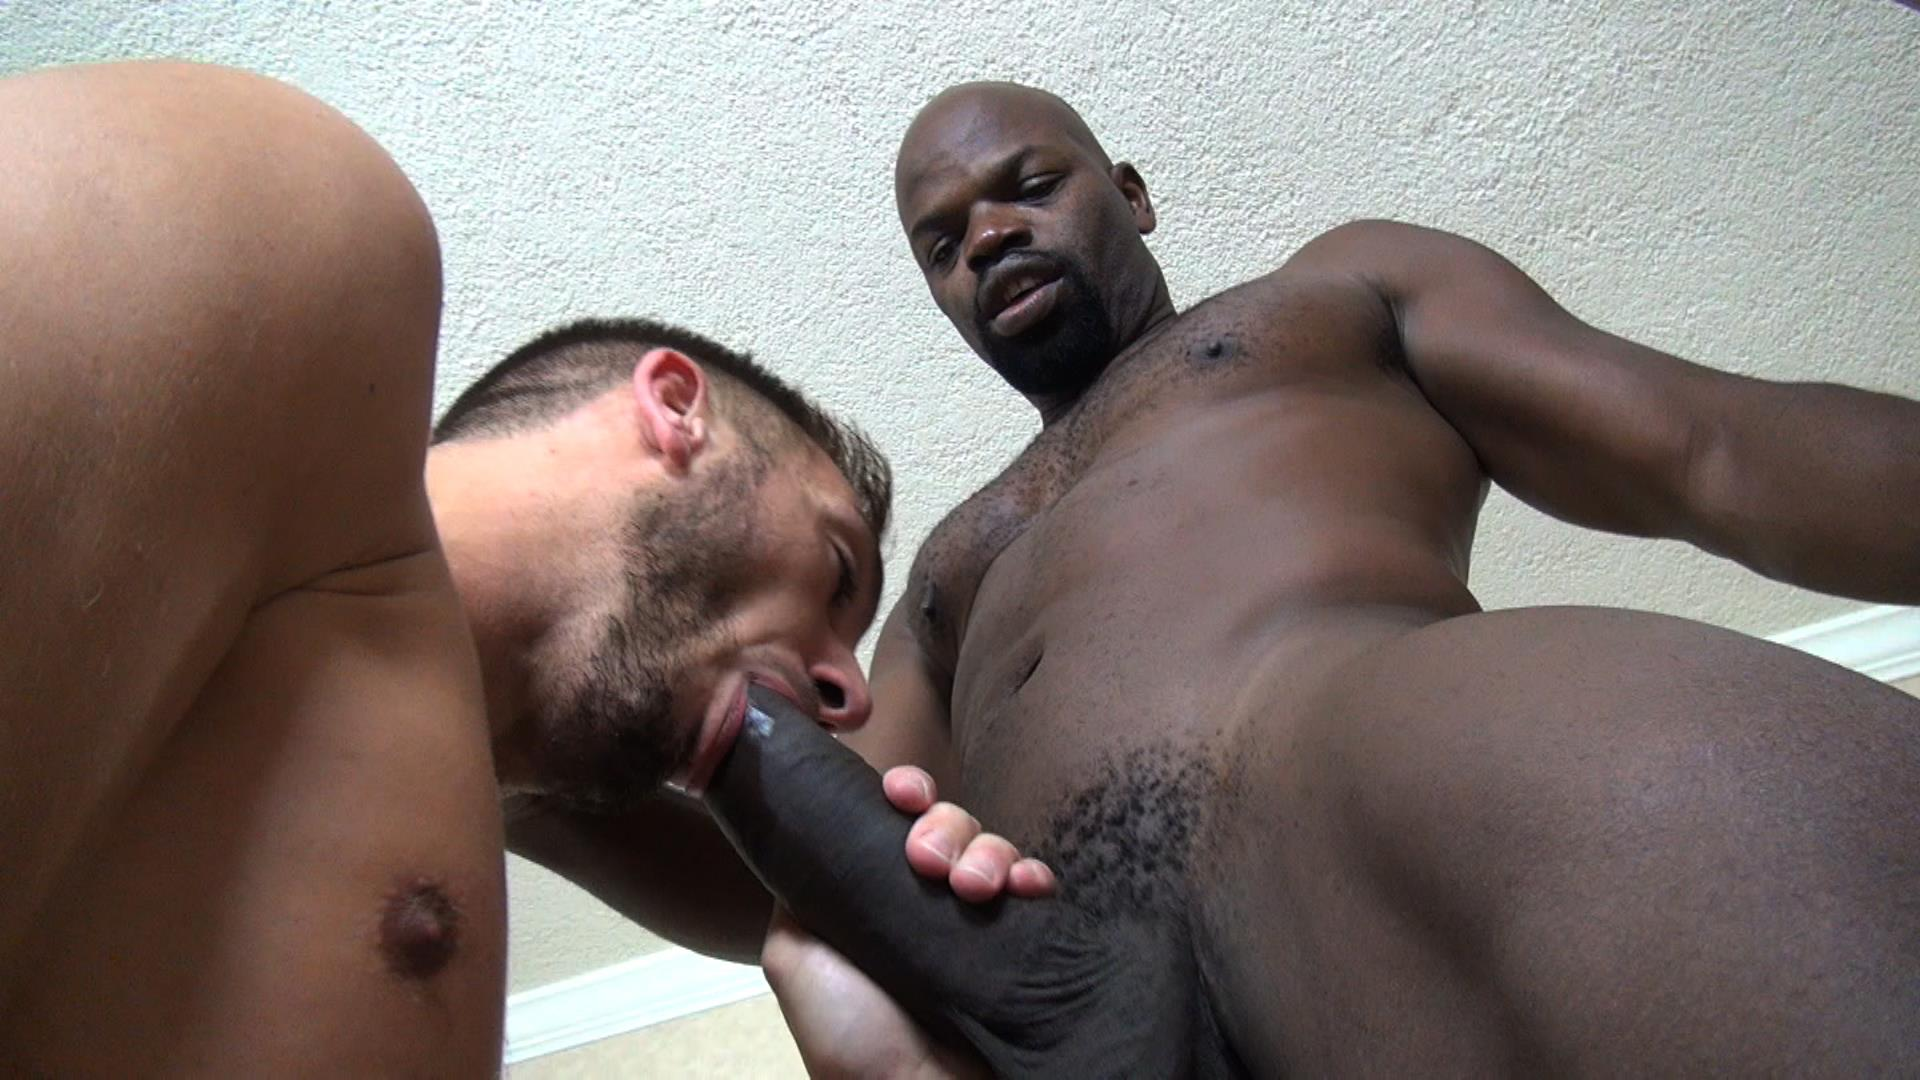 Gay Interracial Group Cock Sucking